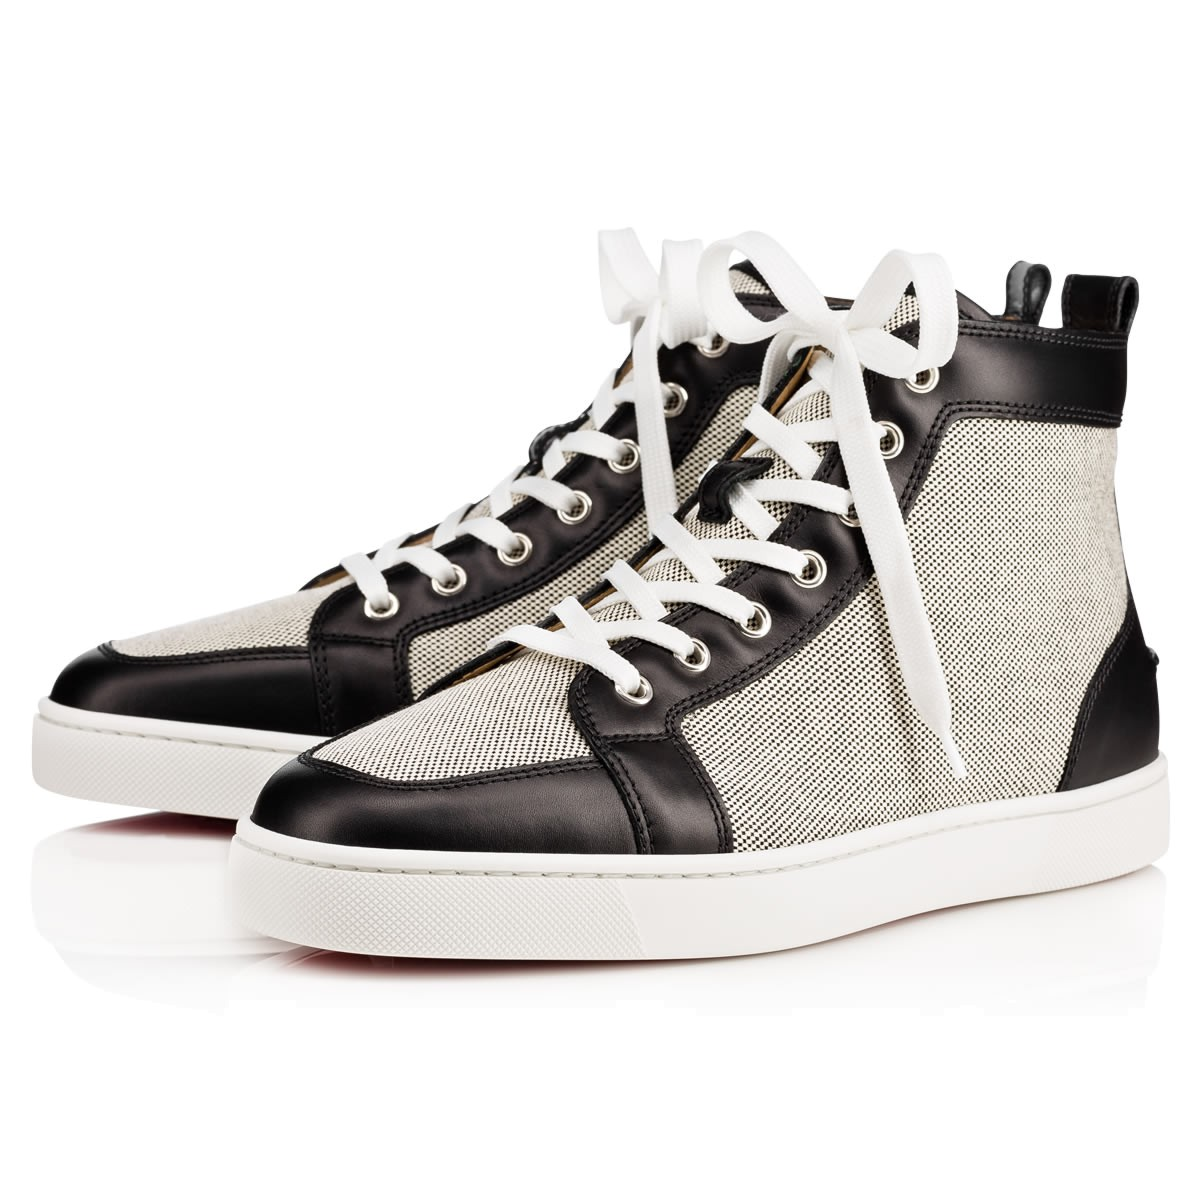 Mens Rantus Flat Leather & Cotton Sneakers Christian Louboutin hCjcR1z8